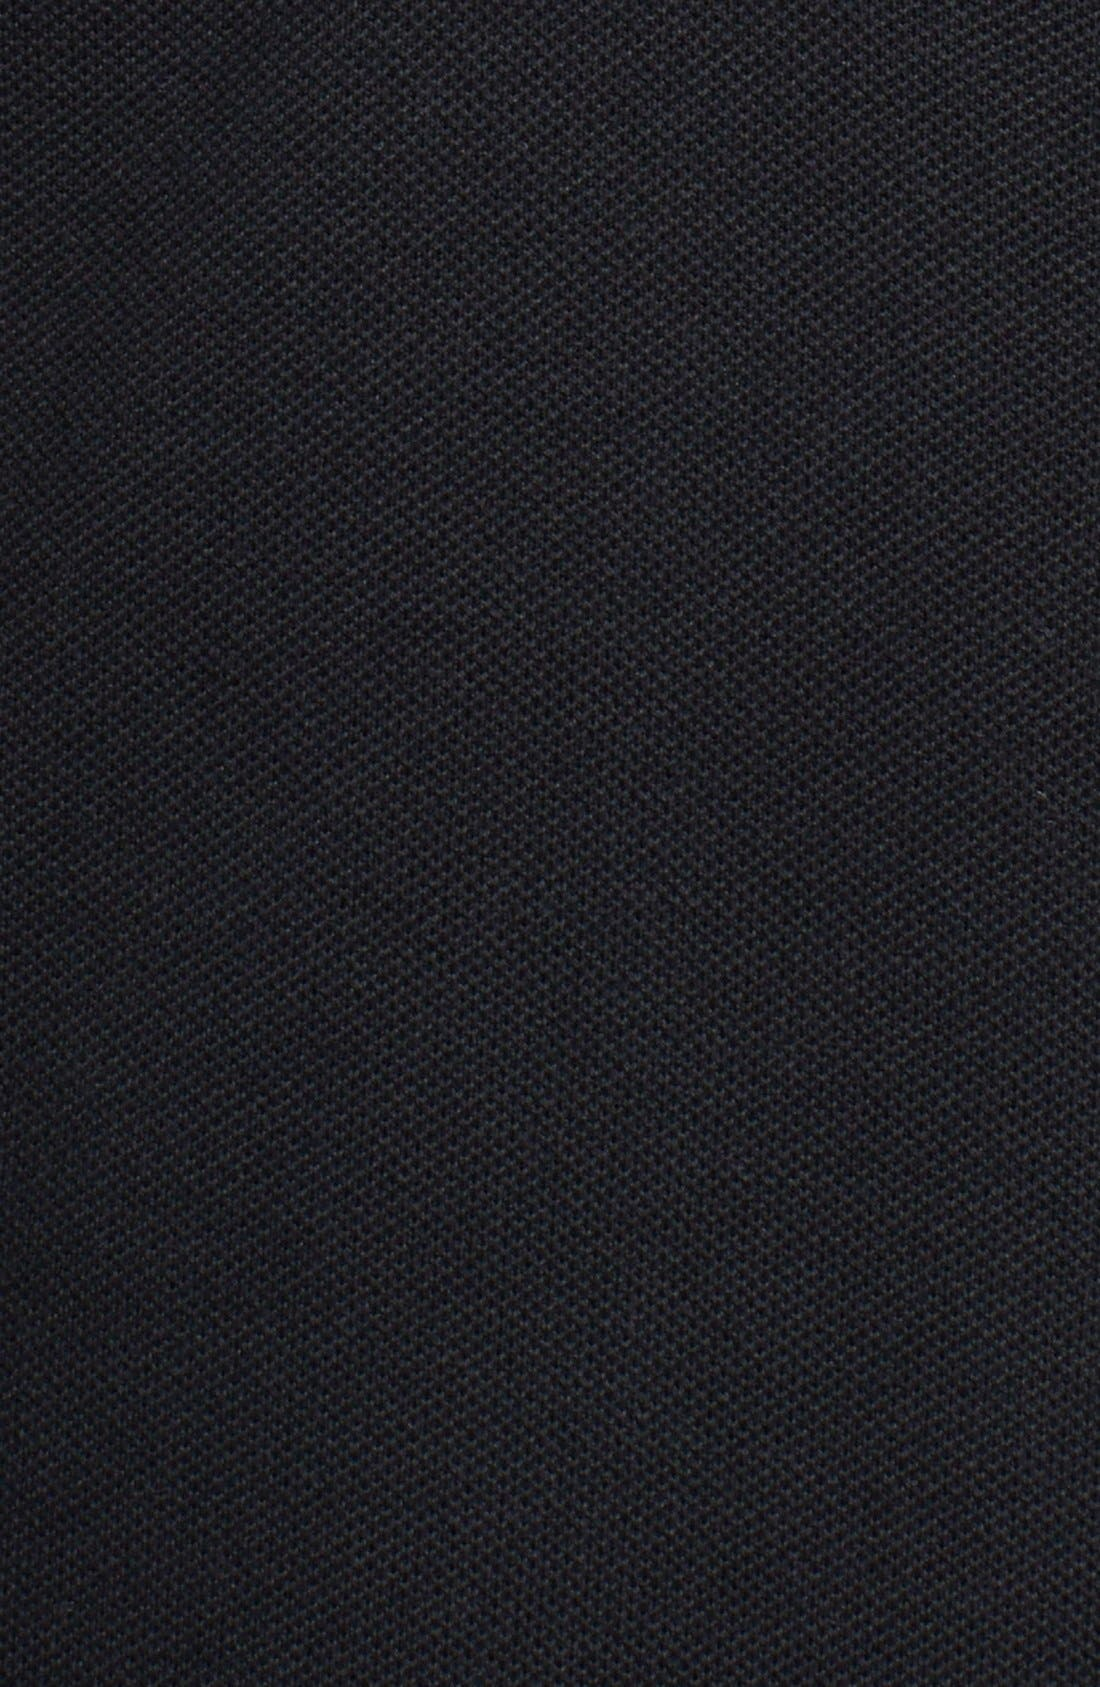 Alternate Image 3  - Ralph Lauren Black Label Stretch Piqué Polo